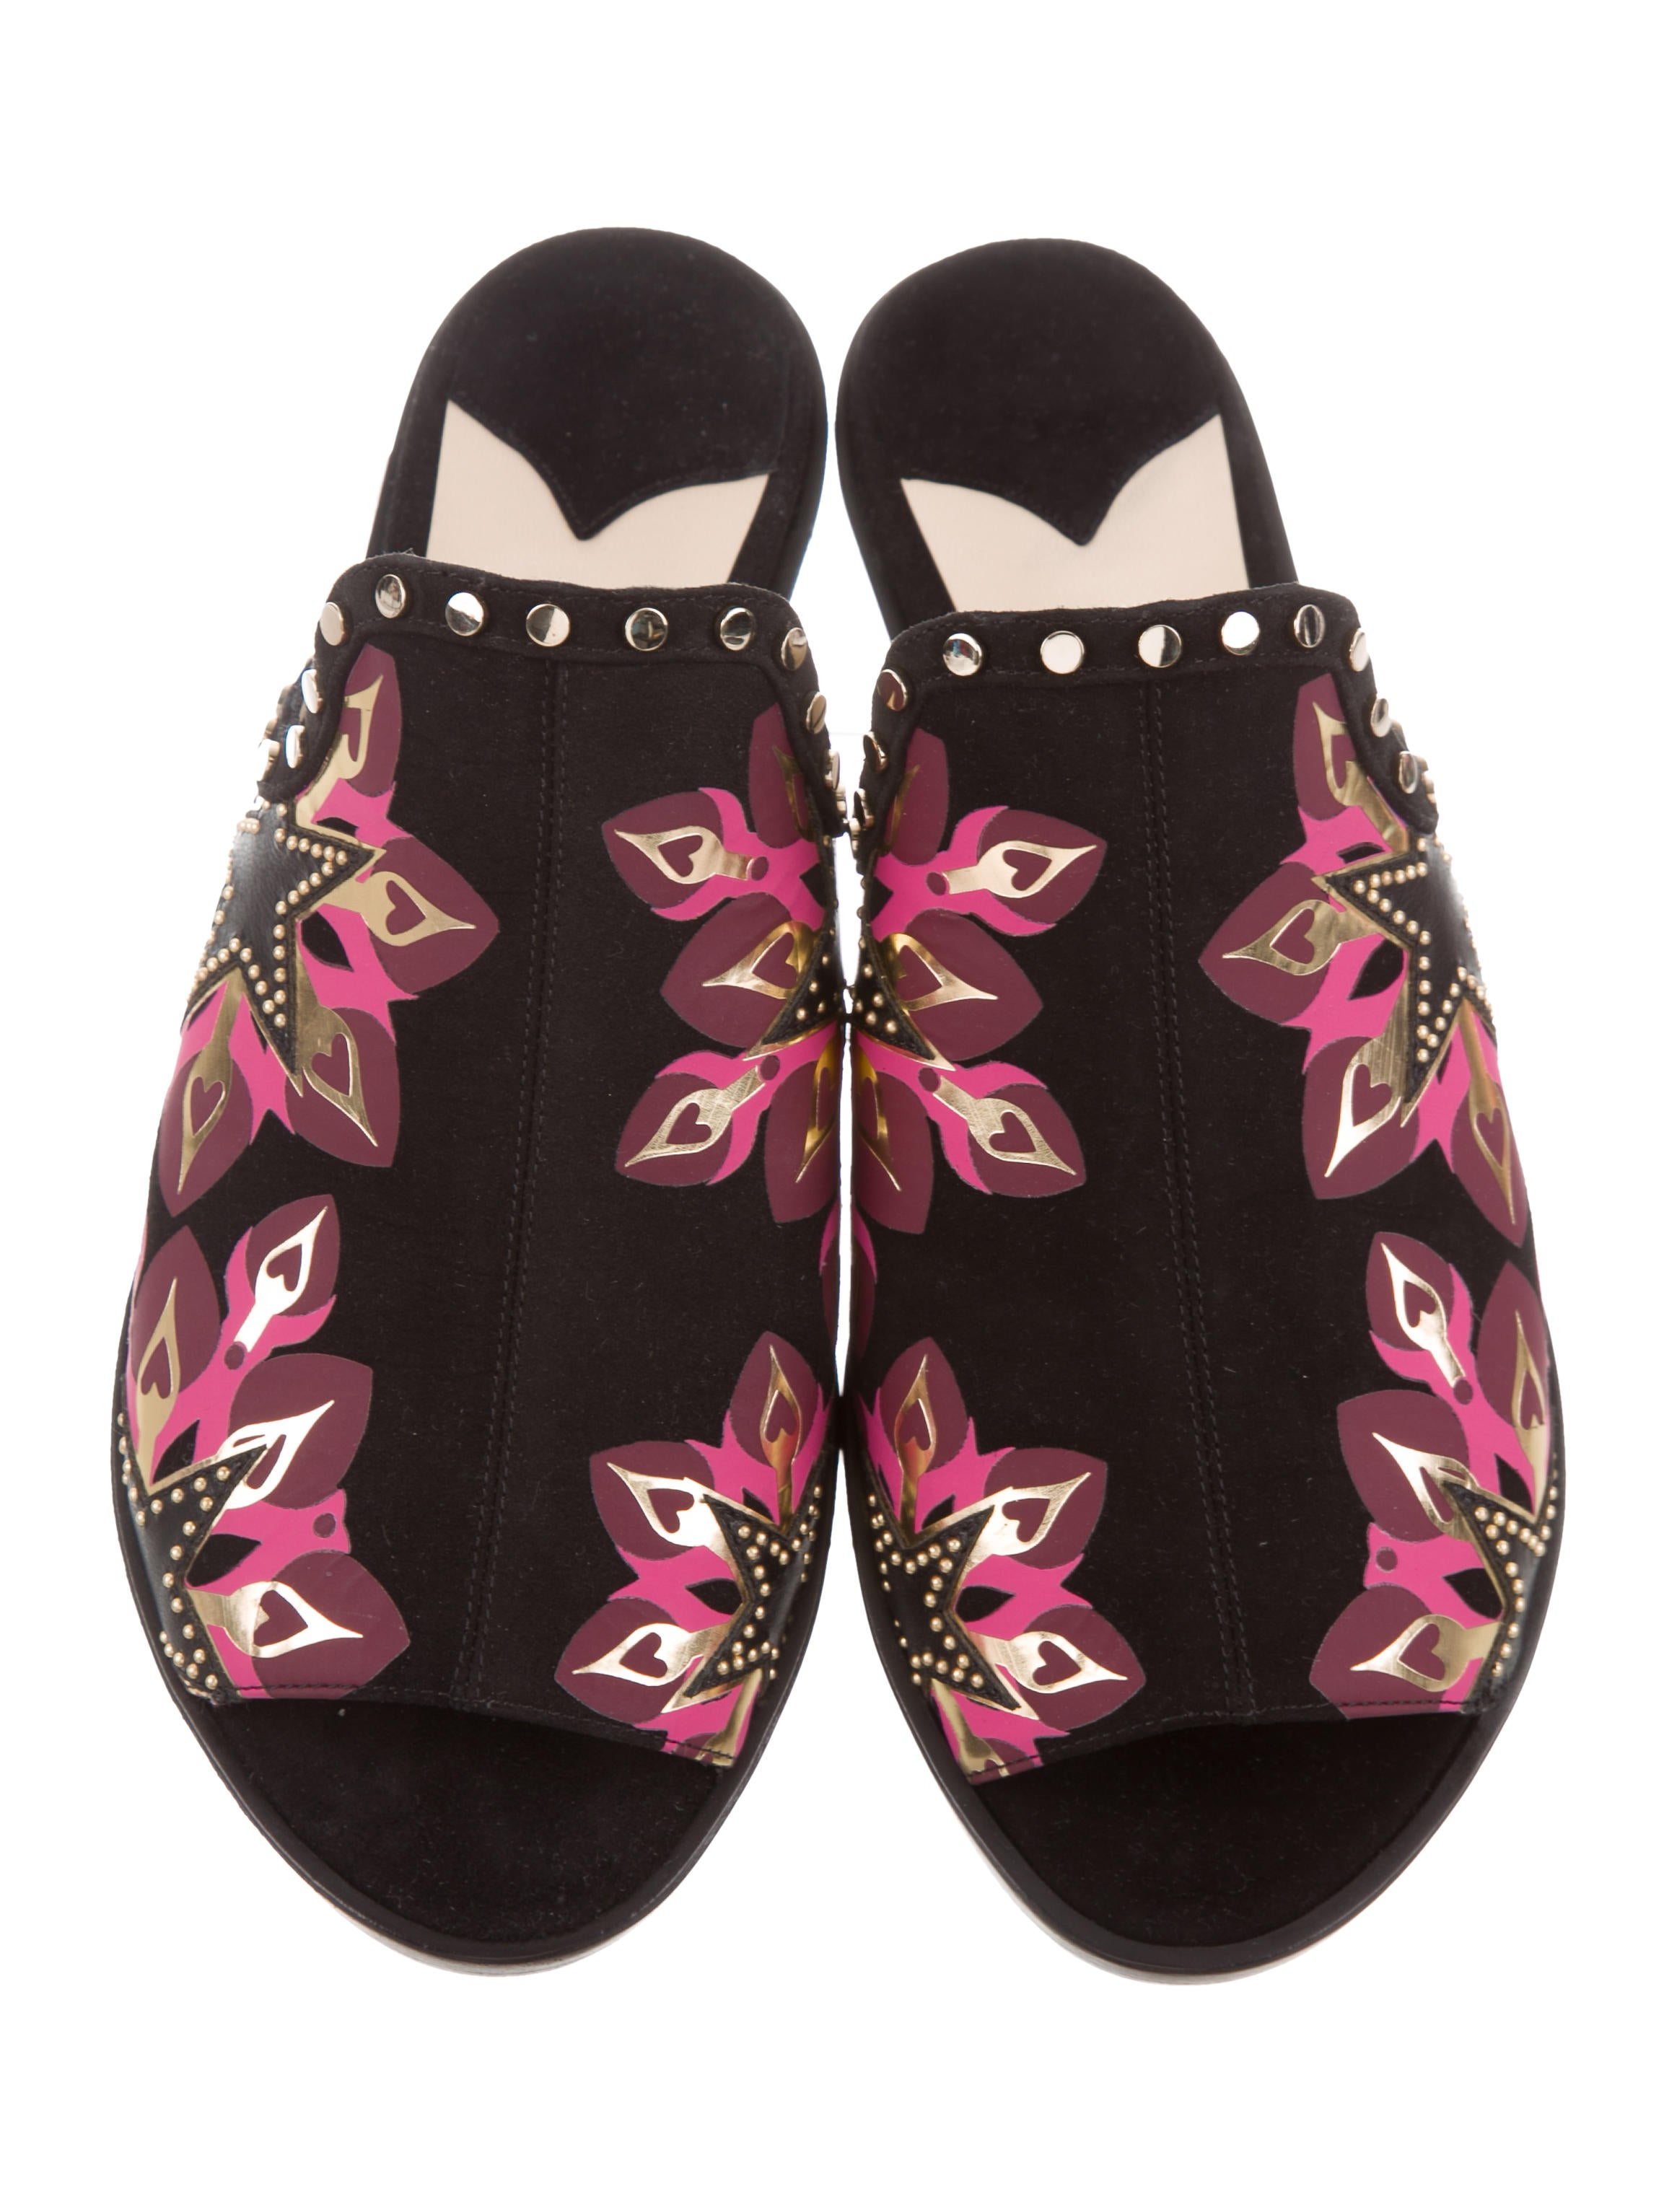 buy cheap outlet locations Jimmy Choo Hustle Embellished Sandals w/ Tags with credit card amwg5